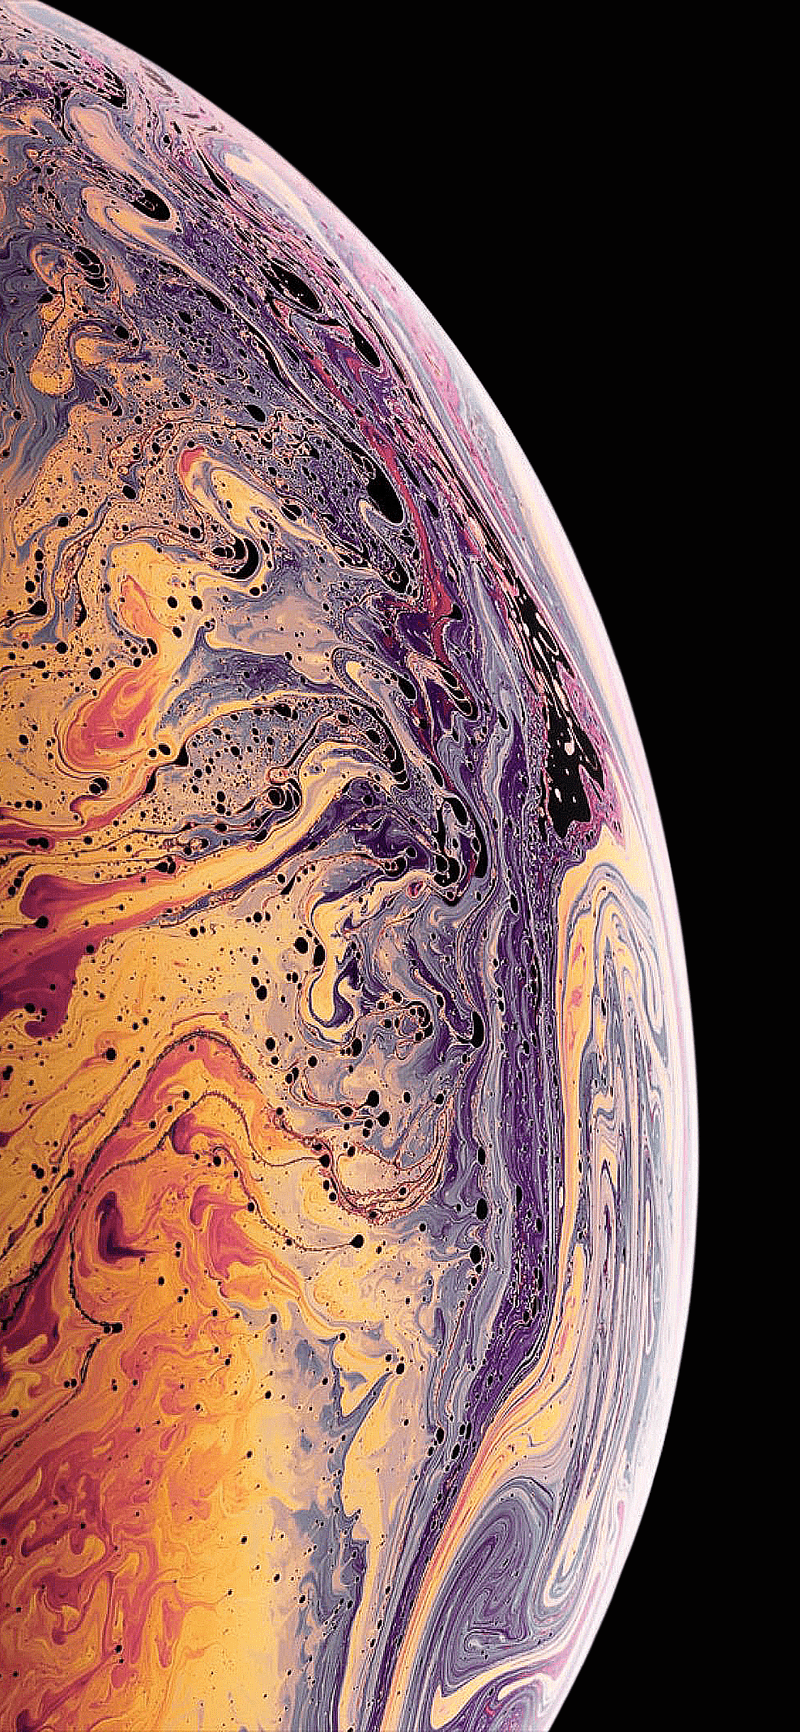 Download Original Iphone Xs Max Xs And Xr Wallpapers Original Iphone Wallpaper Wallpaper Iphone Ios7 Iphone Background Wallpaper